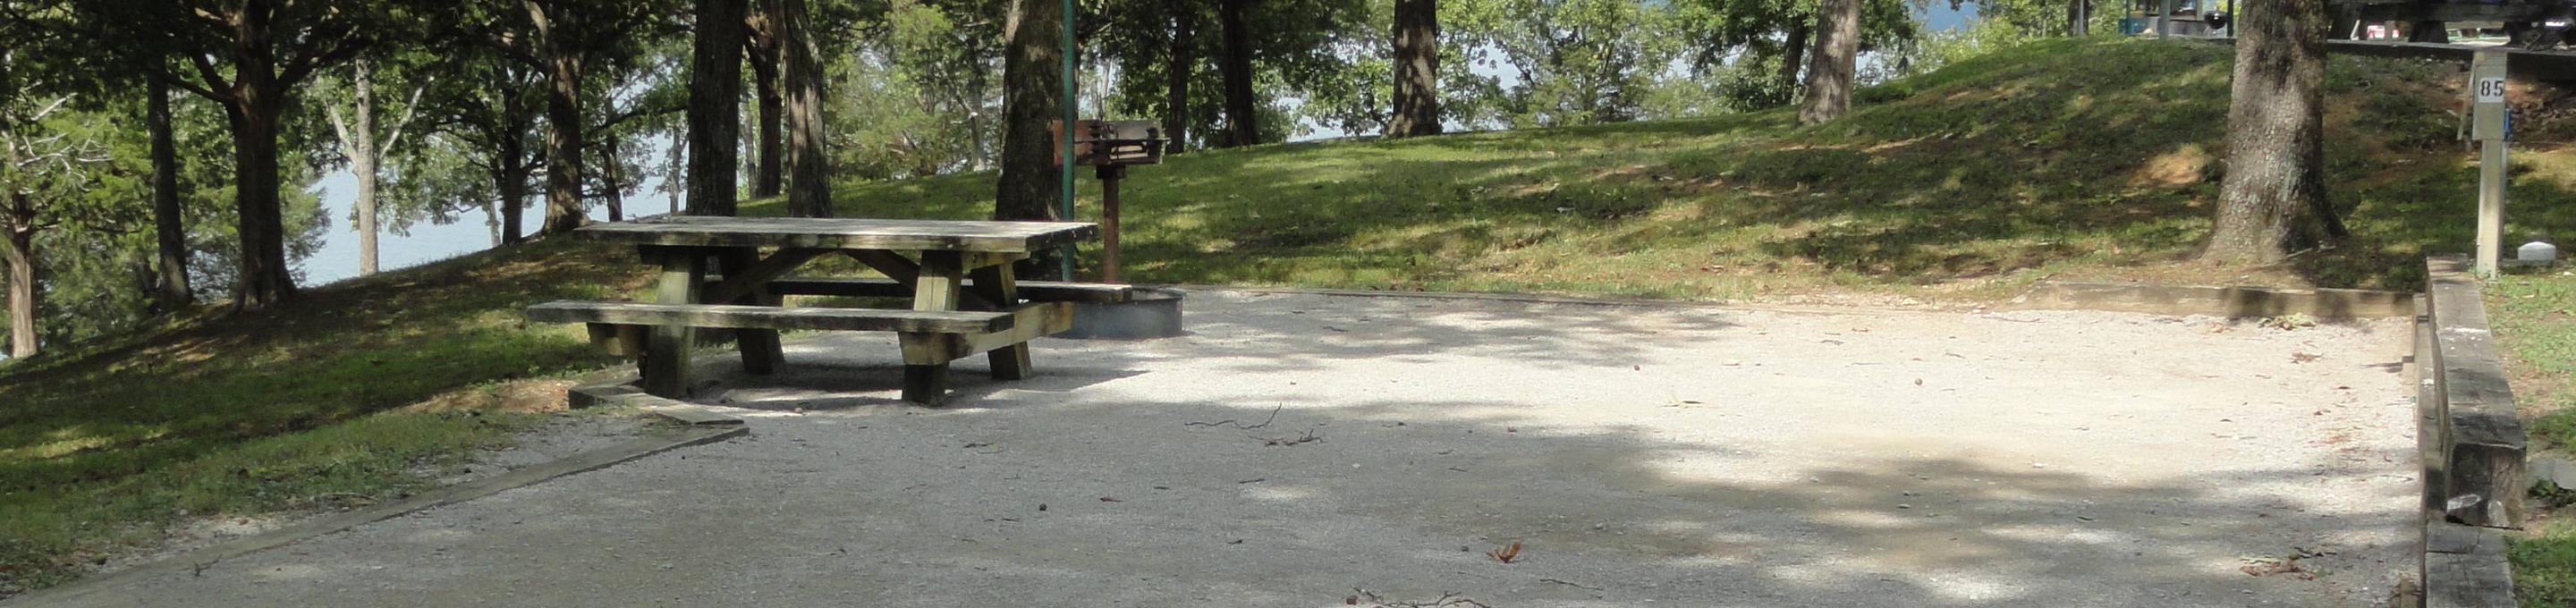 WILLOW GROVE CAMPGROUND SITE #85